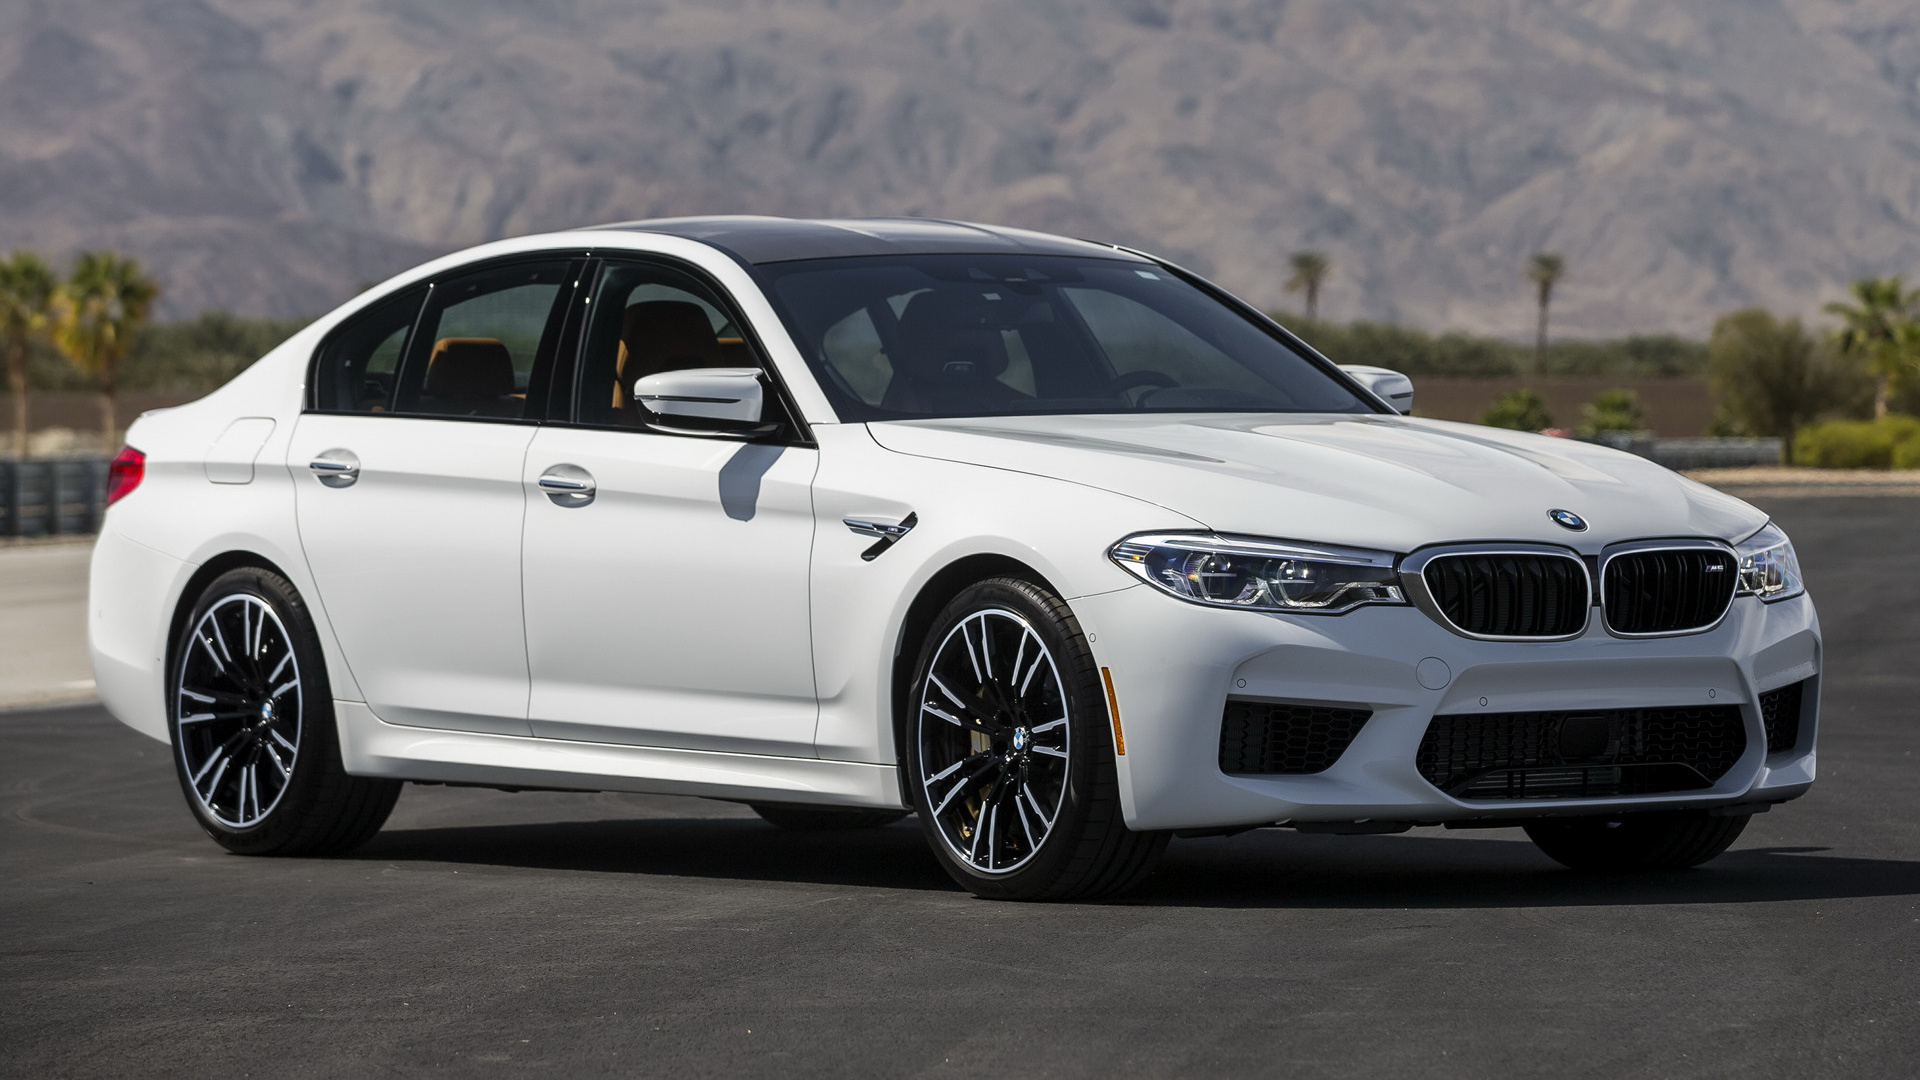 BMW M5 (2019) US Wallpapers and HD Images - Car Pixel